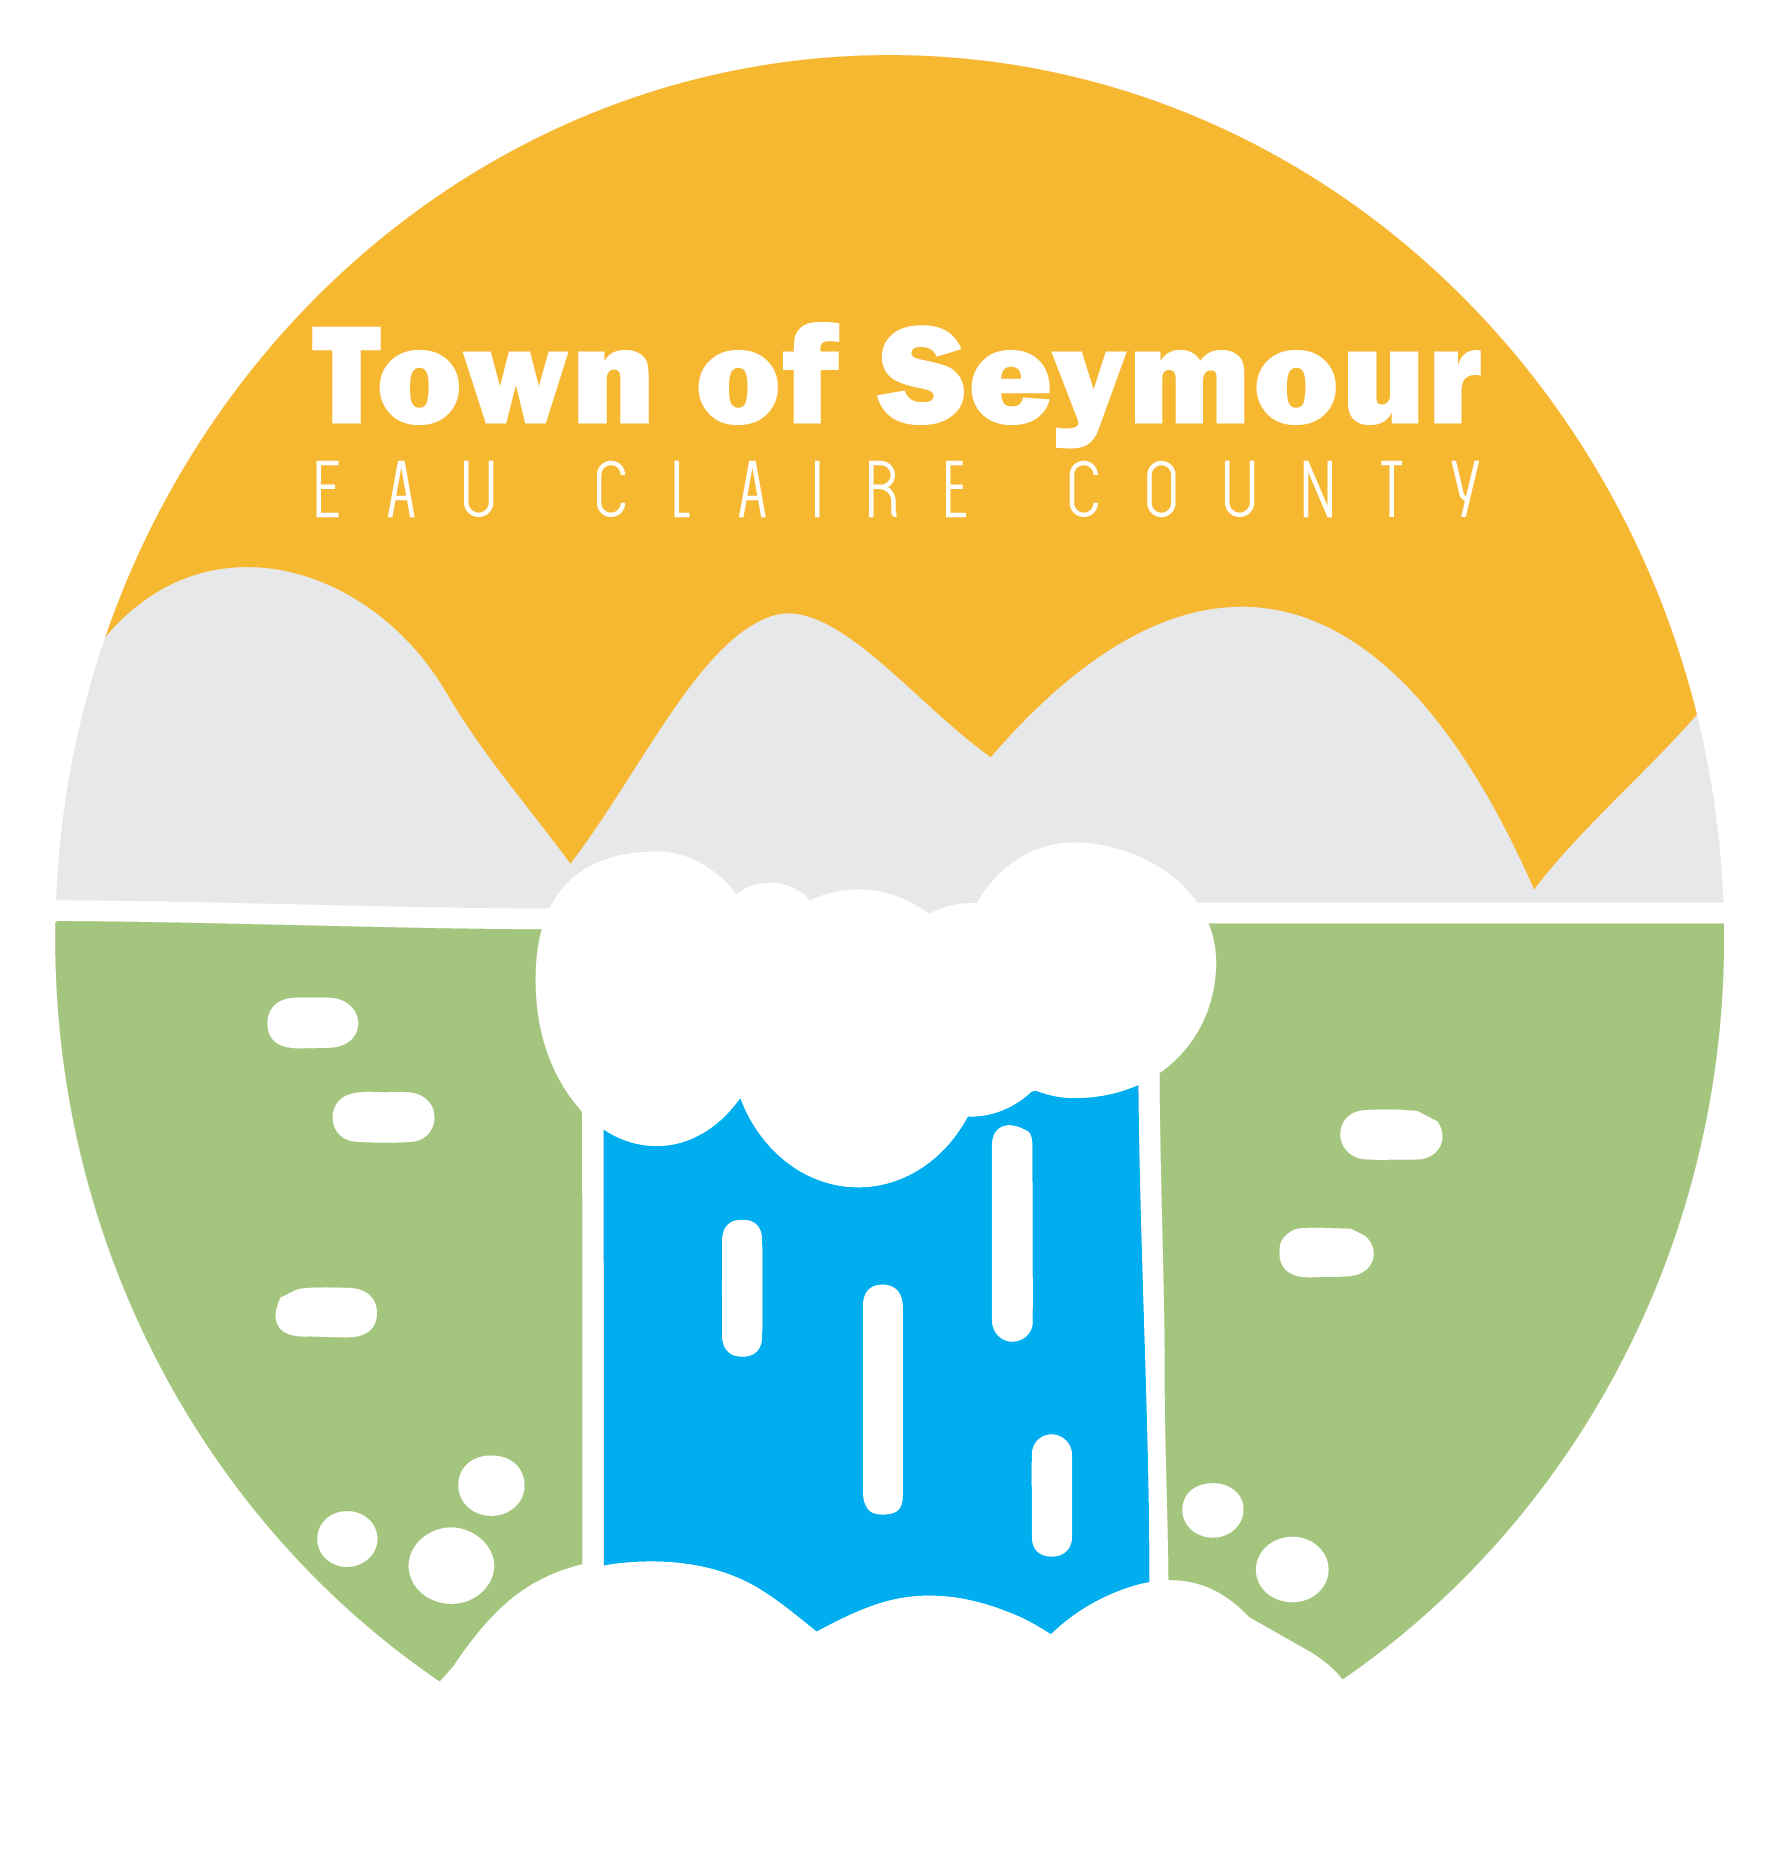 Town of Seymour